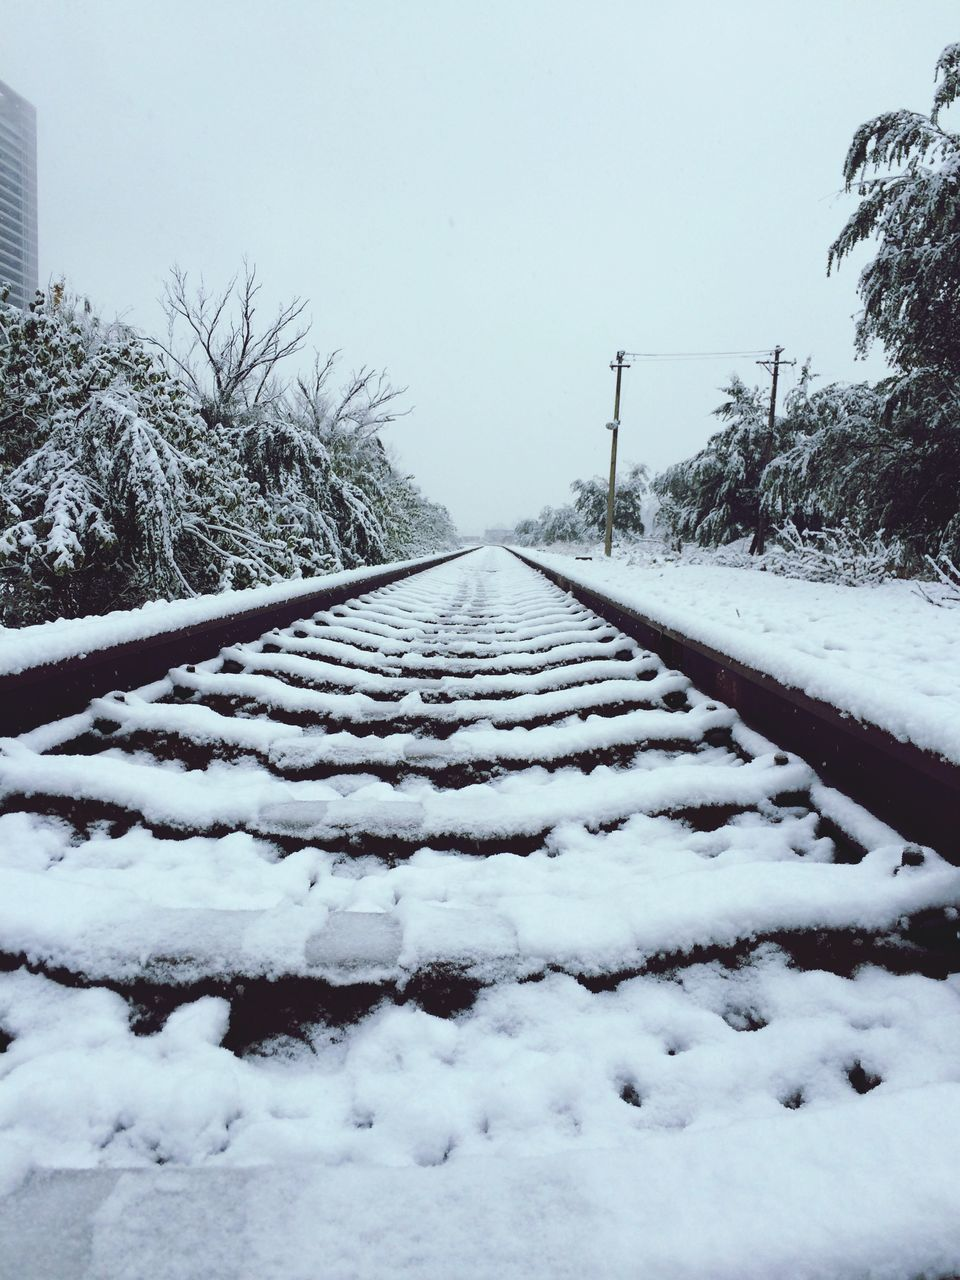 Scenic View Of Snow Covered Railroad Tracks